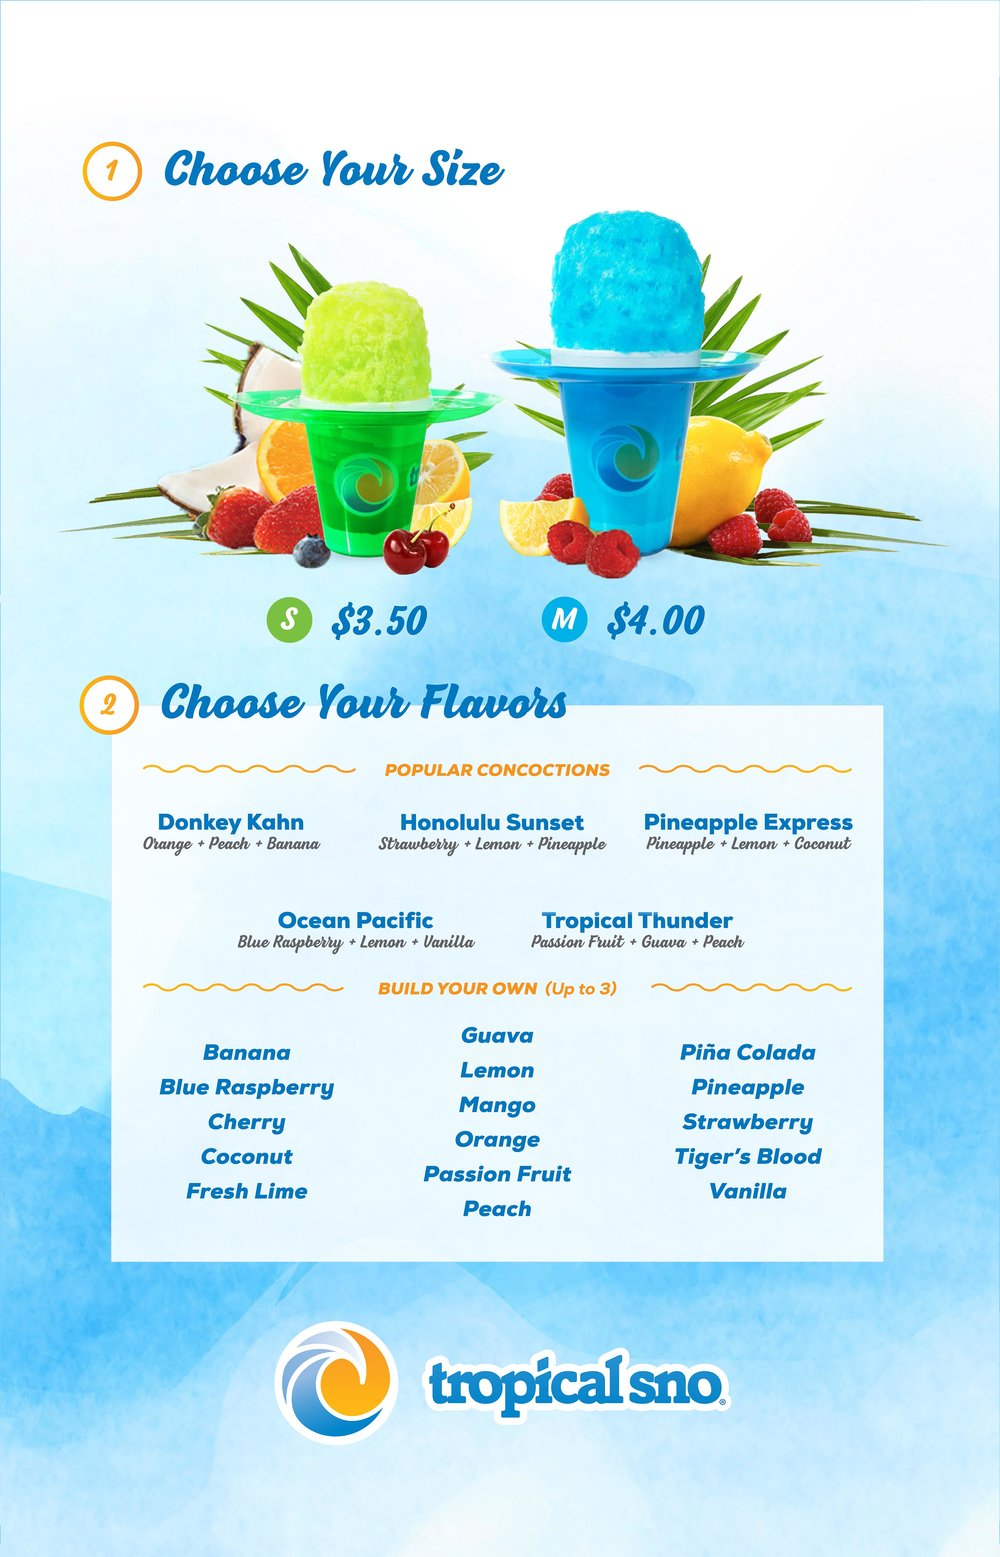 Tropical-sno-Web-Menu-2017.jpg